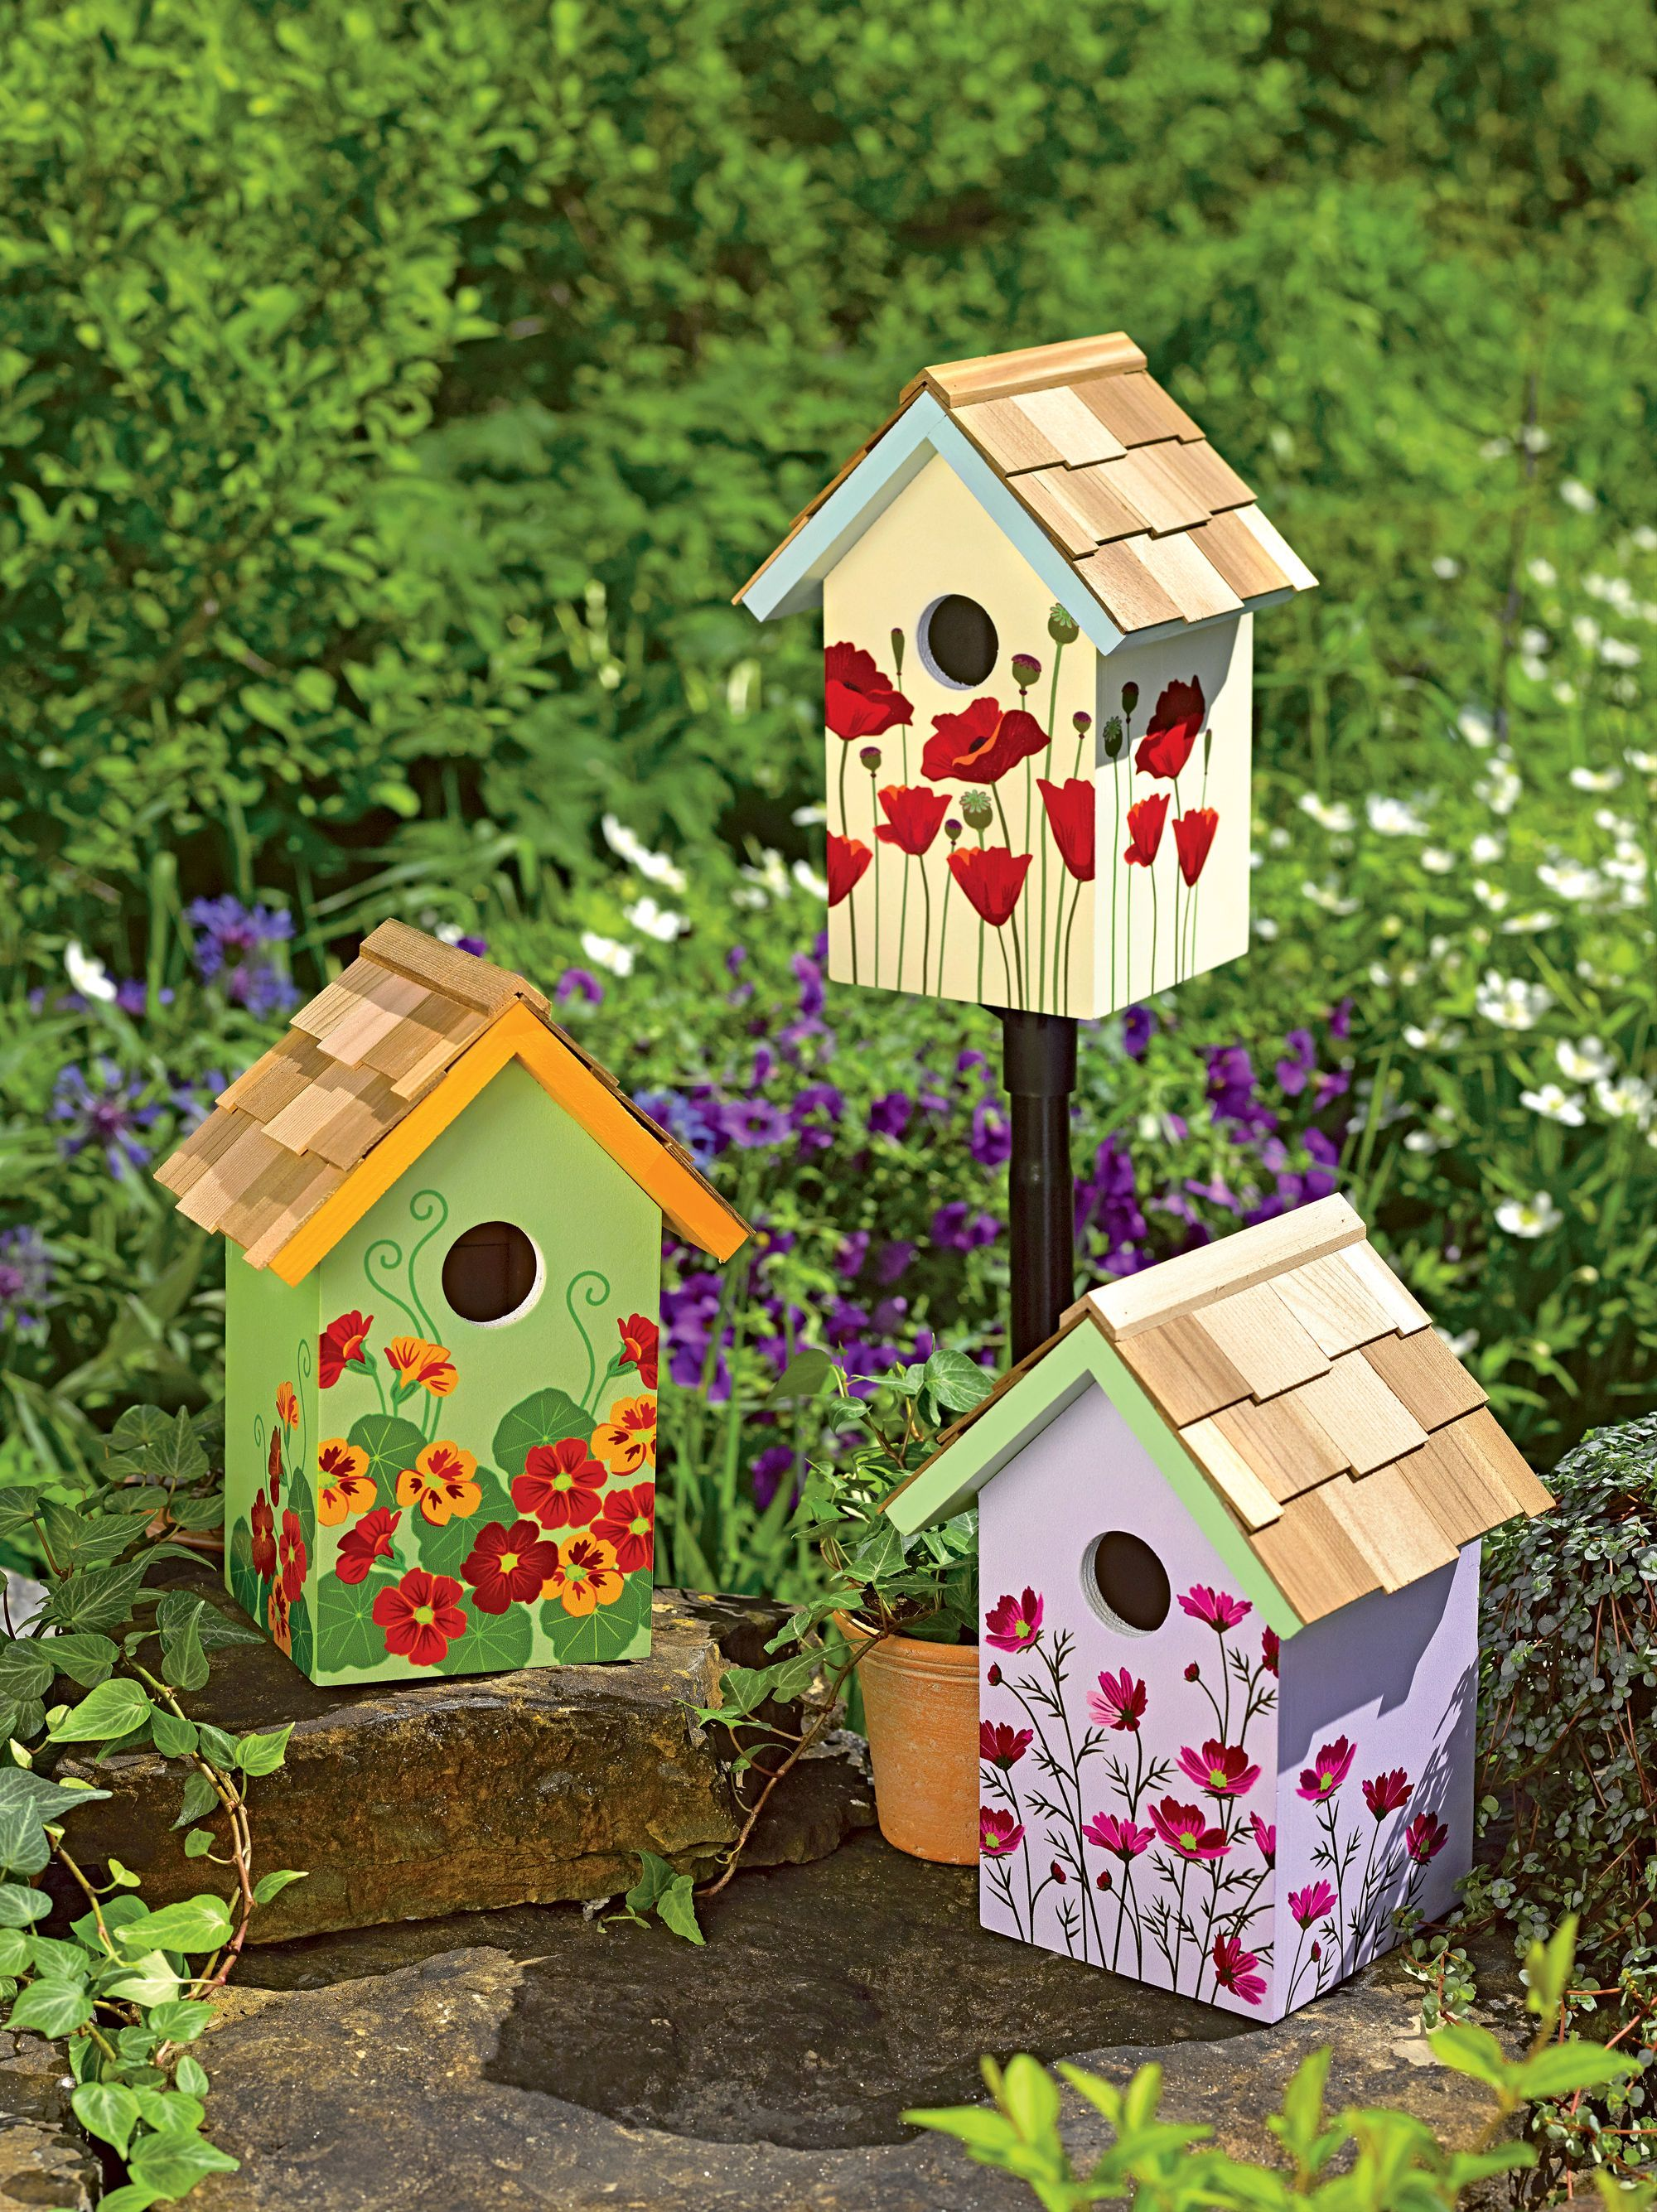 Vogelhaus Bemalen Ideen Floral Print Birdhouses Set Of 3 Gardeners Gifts For Bird